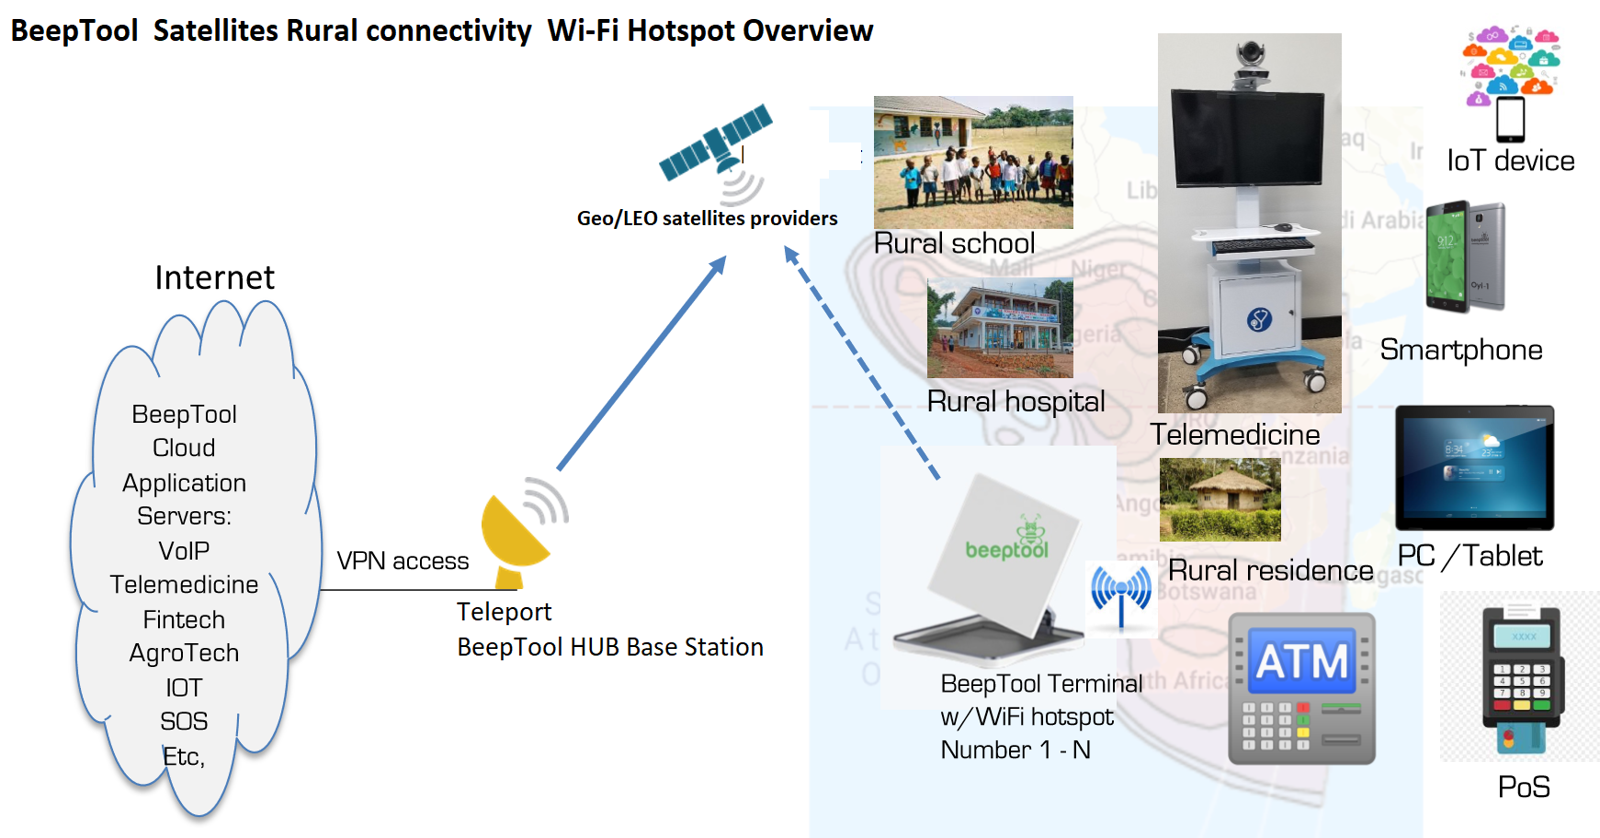 Overview of the BeepTool Rural community network